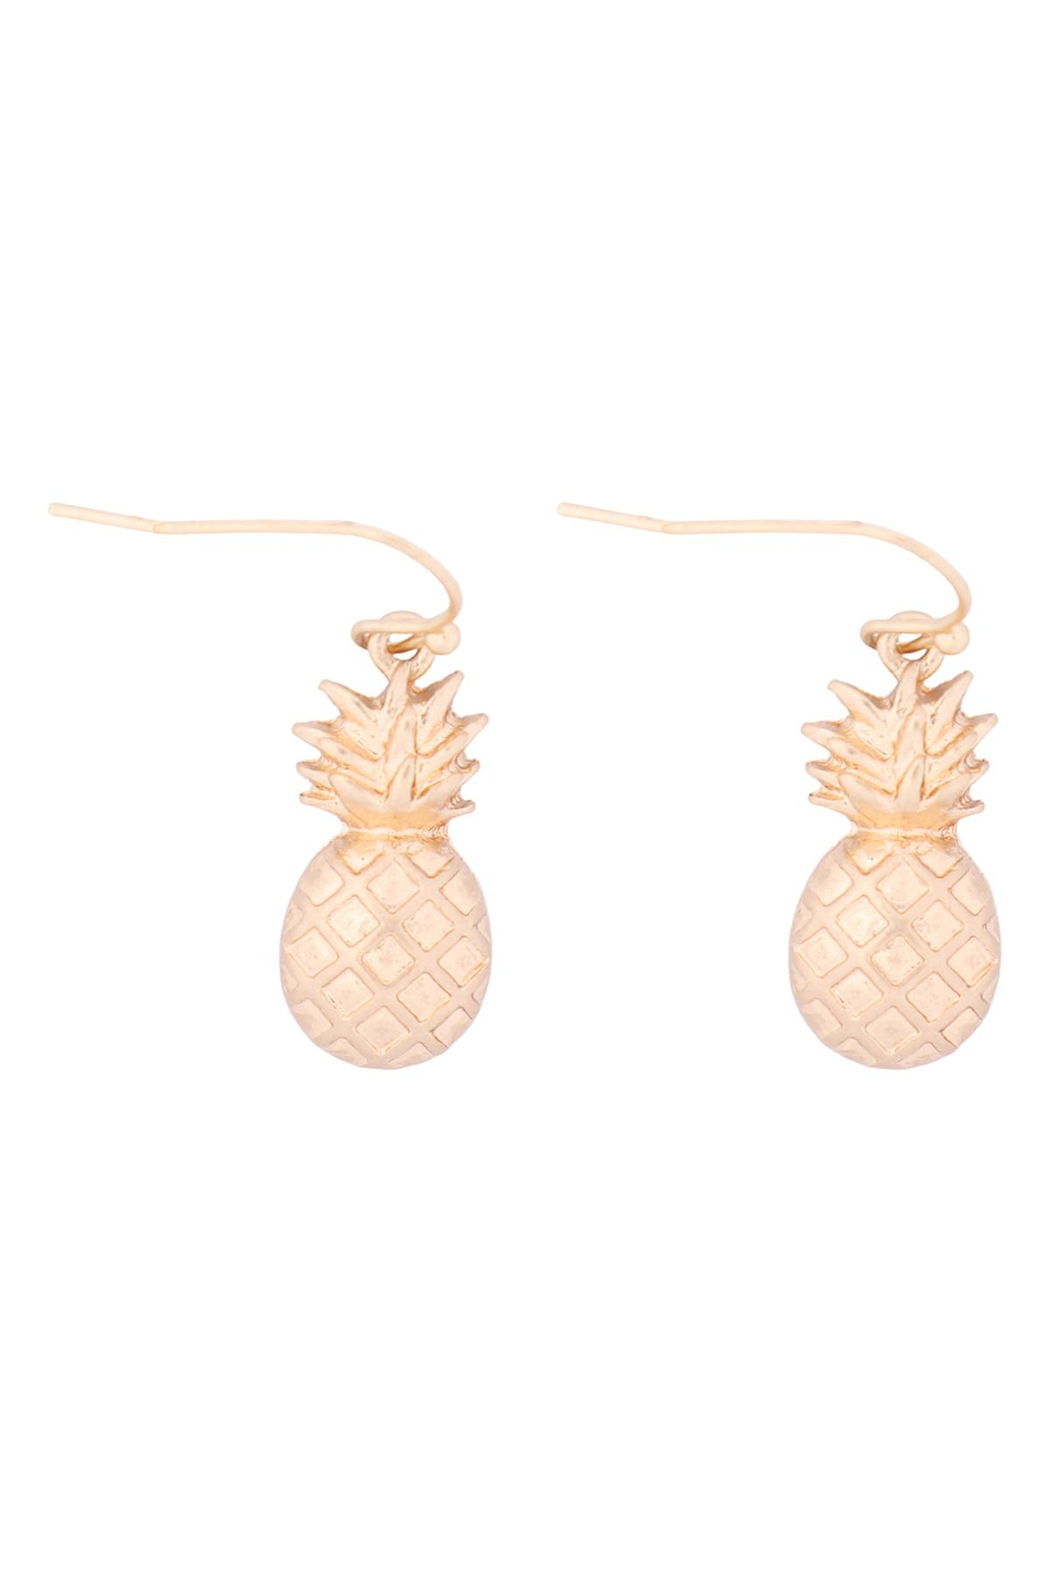 Riah Fashion Pineapple-Fish-Hook-Earrings - Main Image